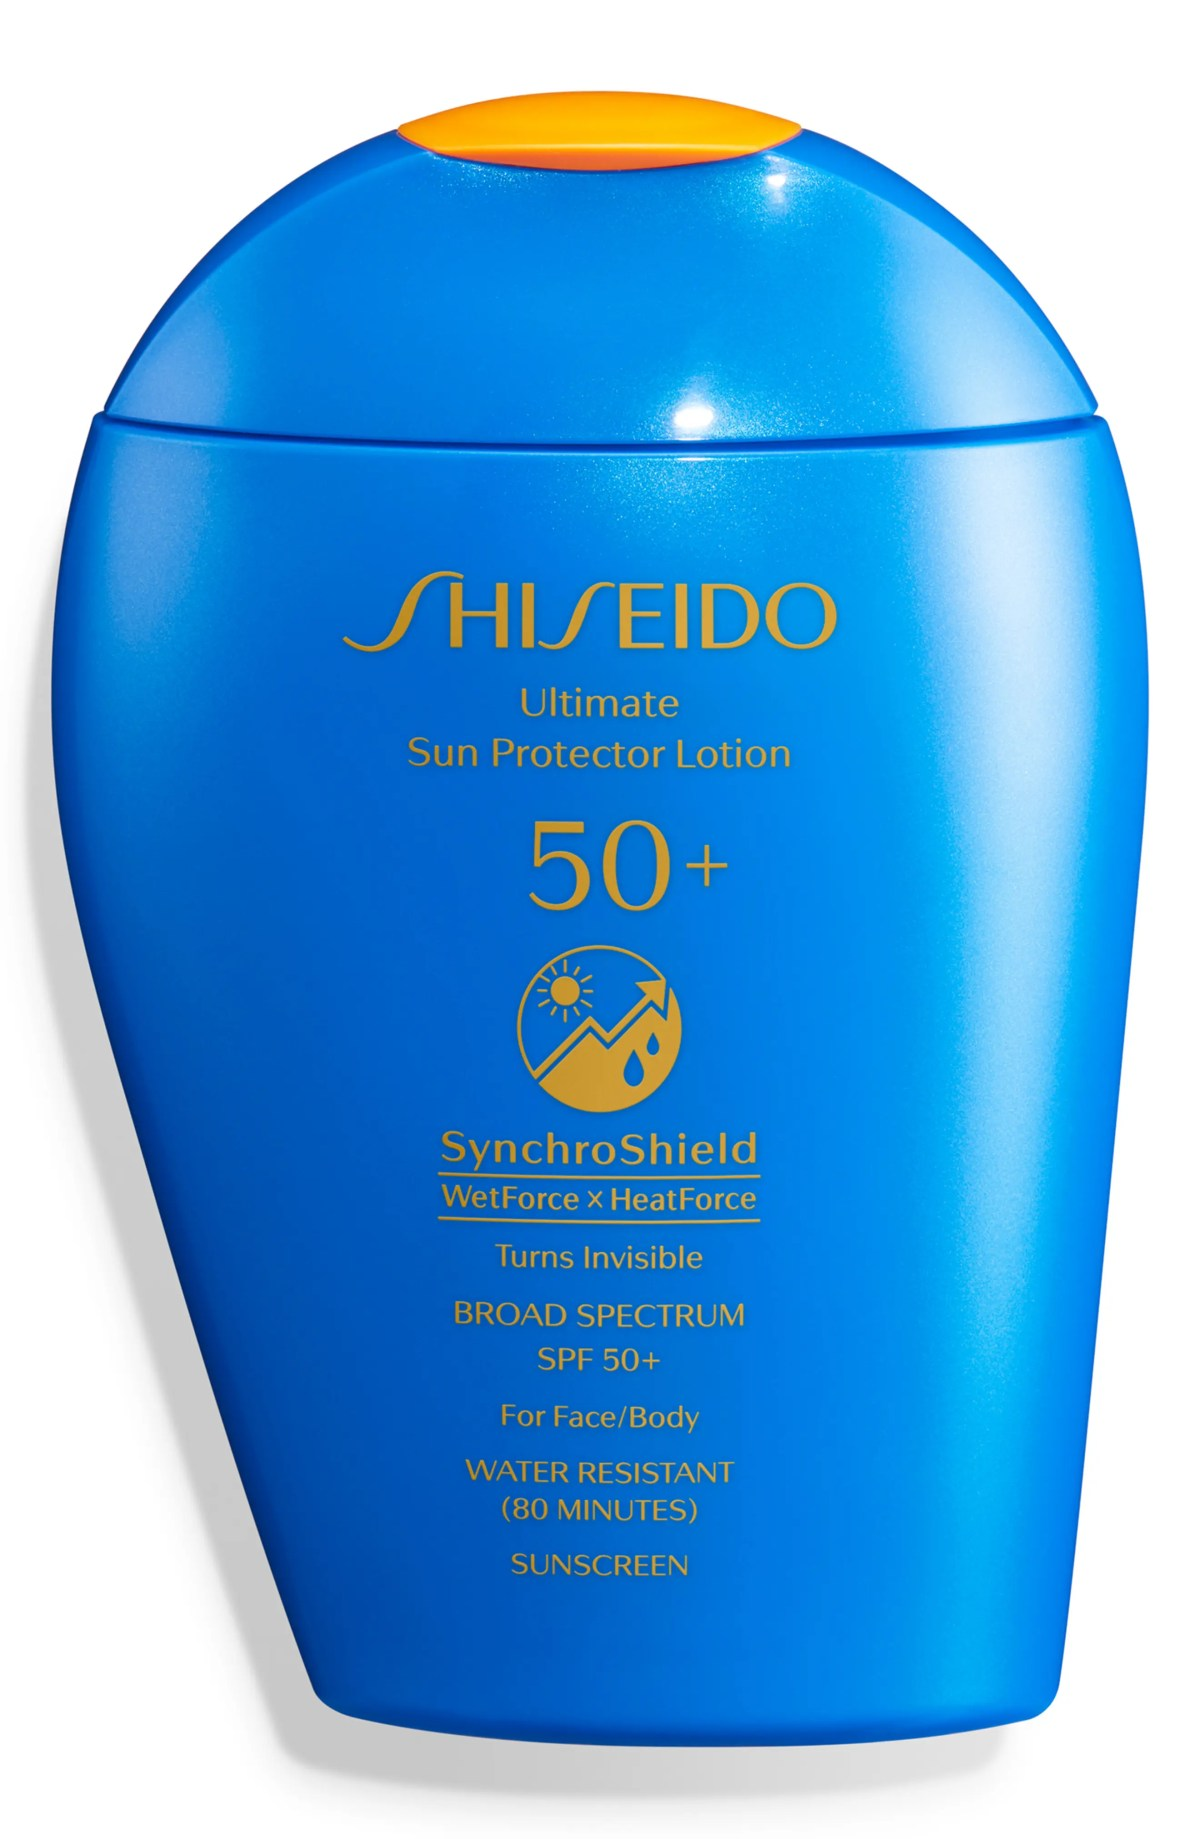 SHISEIDO Ultimate Sun Protector Lotion SPF 50+ Sunscreen, Main, color, NO COLOR